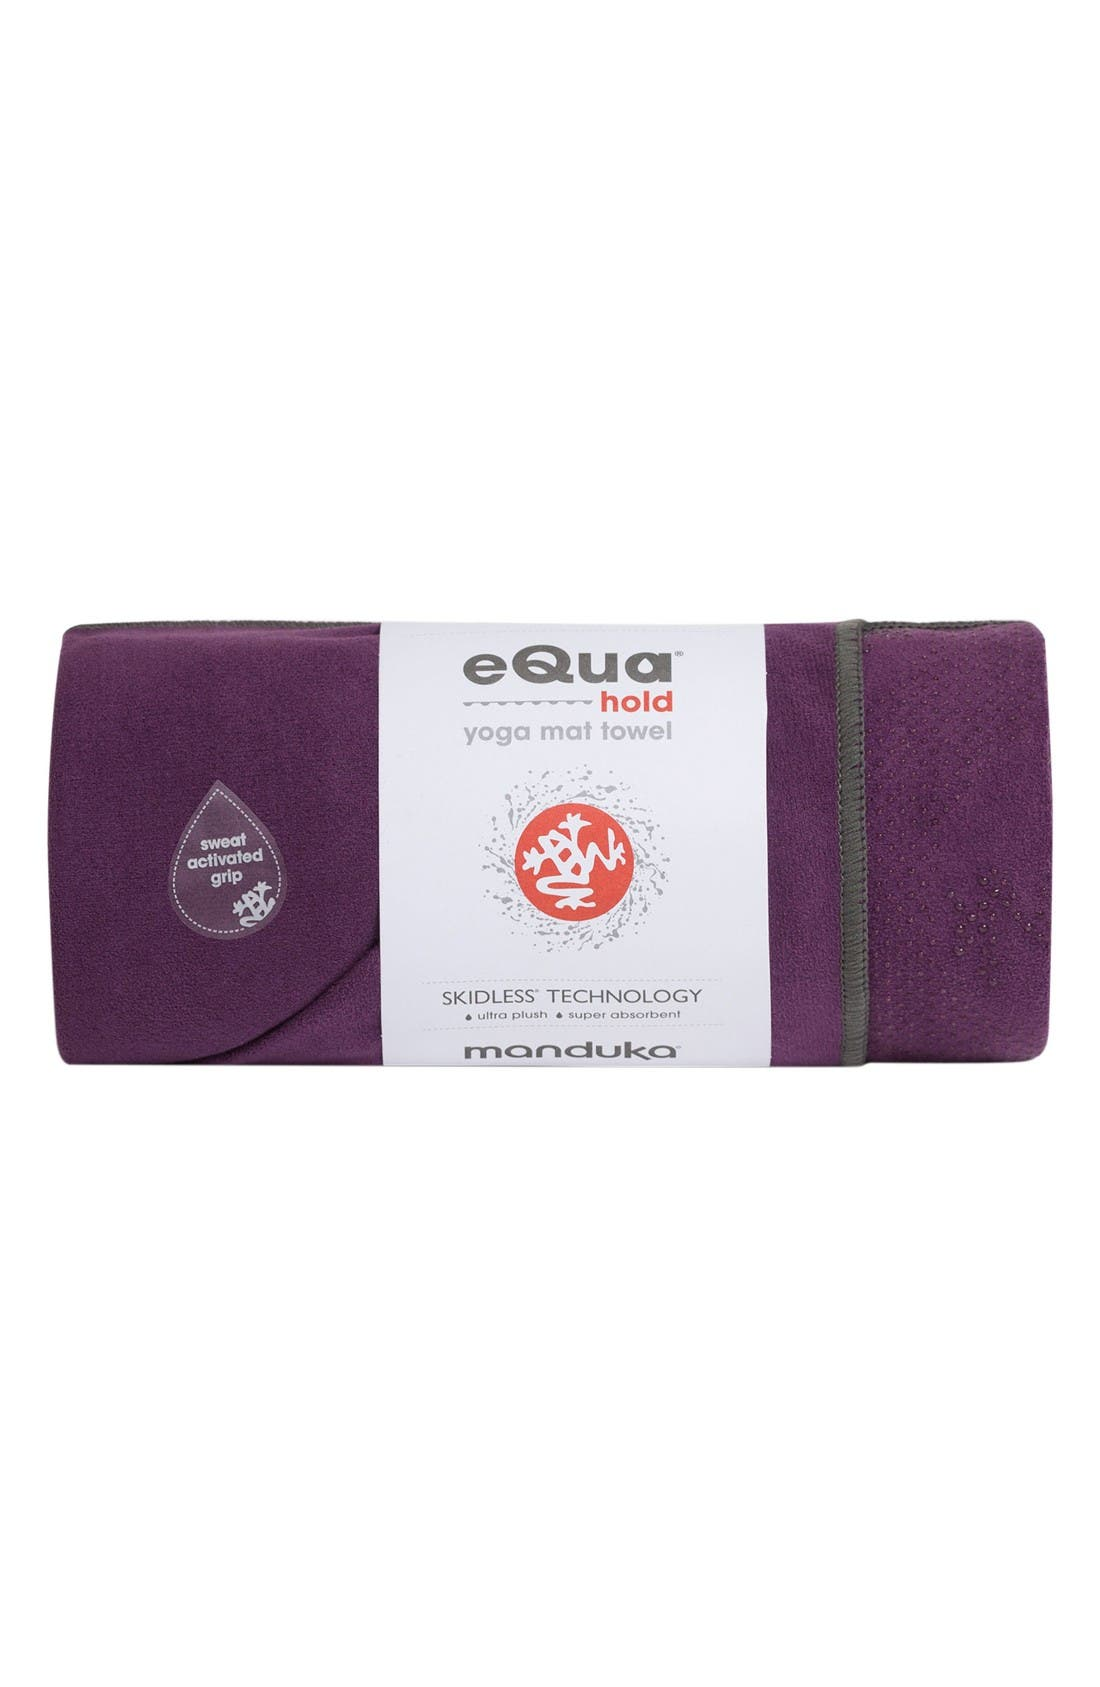 MANDUKA 'eQua Hold' Yoga Mat Towel